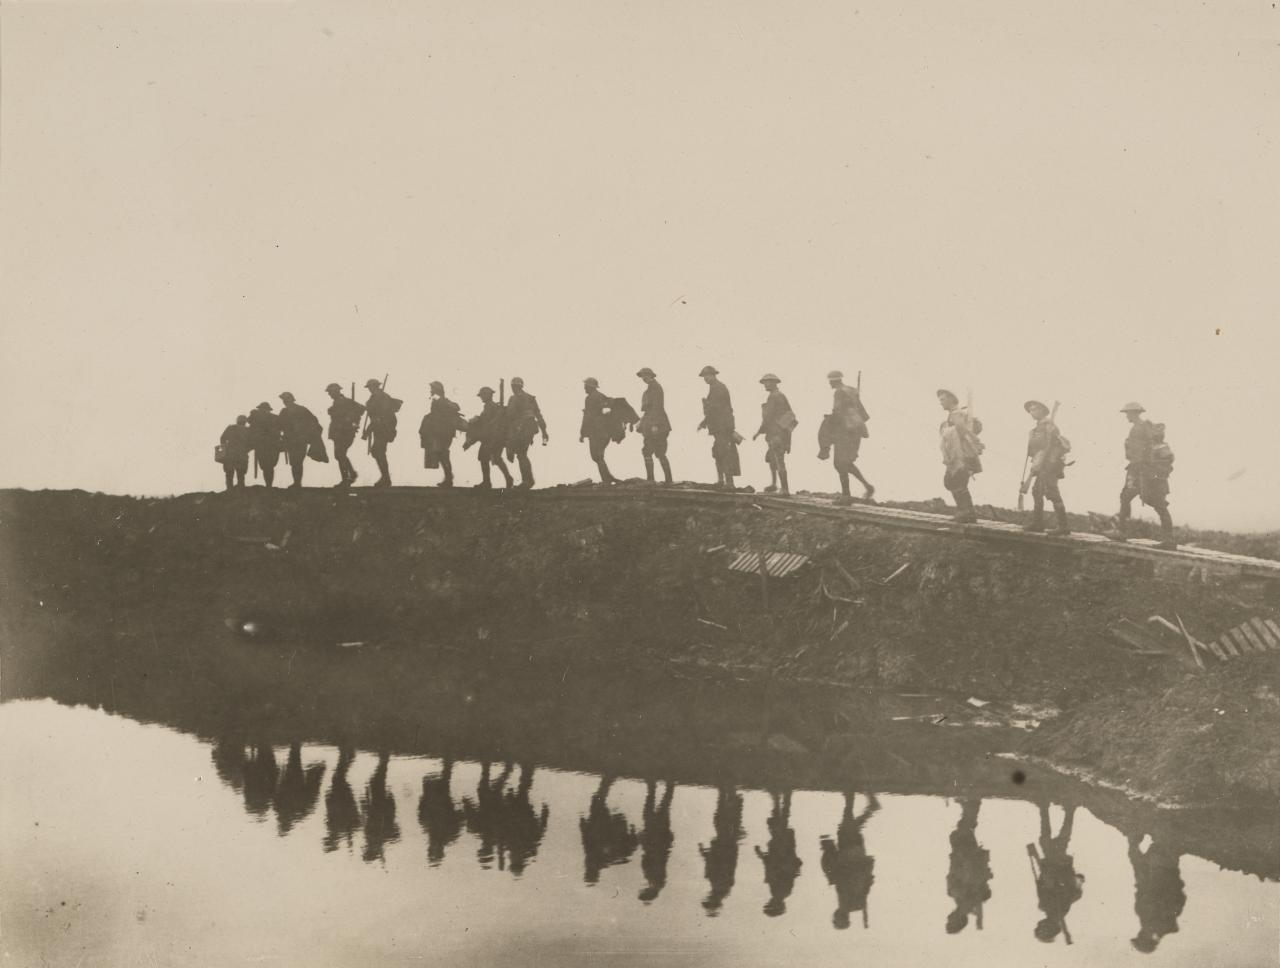 No title (Supporting troops of the 1st Australian Division walking on a duckboard track)